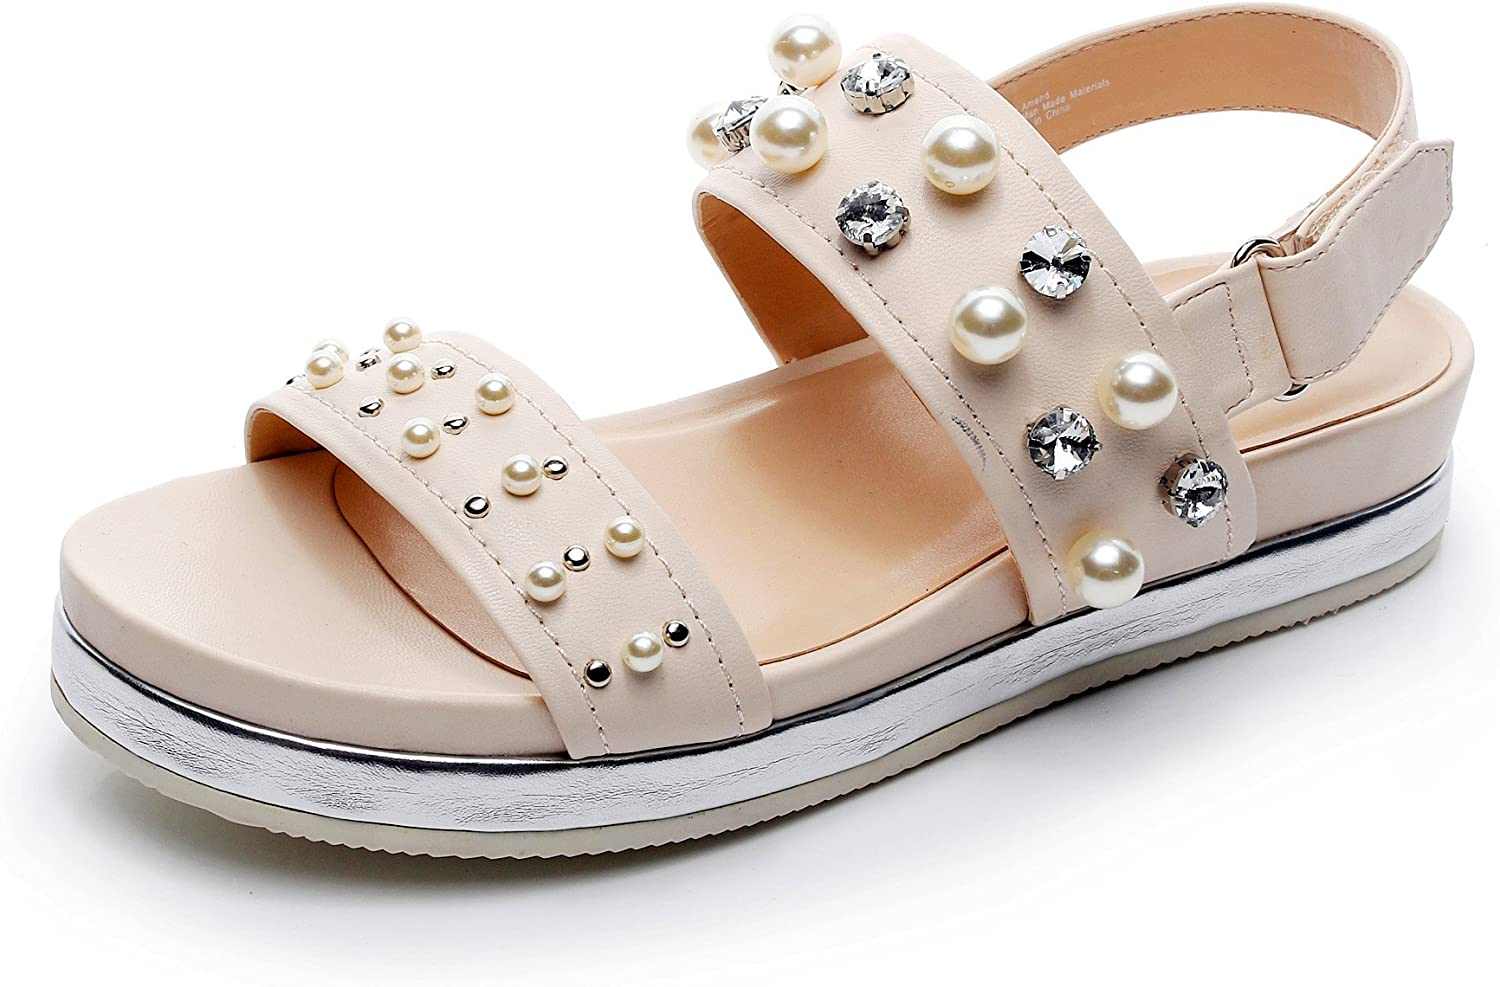 DUNION Women's Amend Glamour Pearl Decor Vamp Platform Sandal Rhinestone Fashion shoes